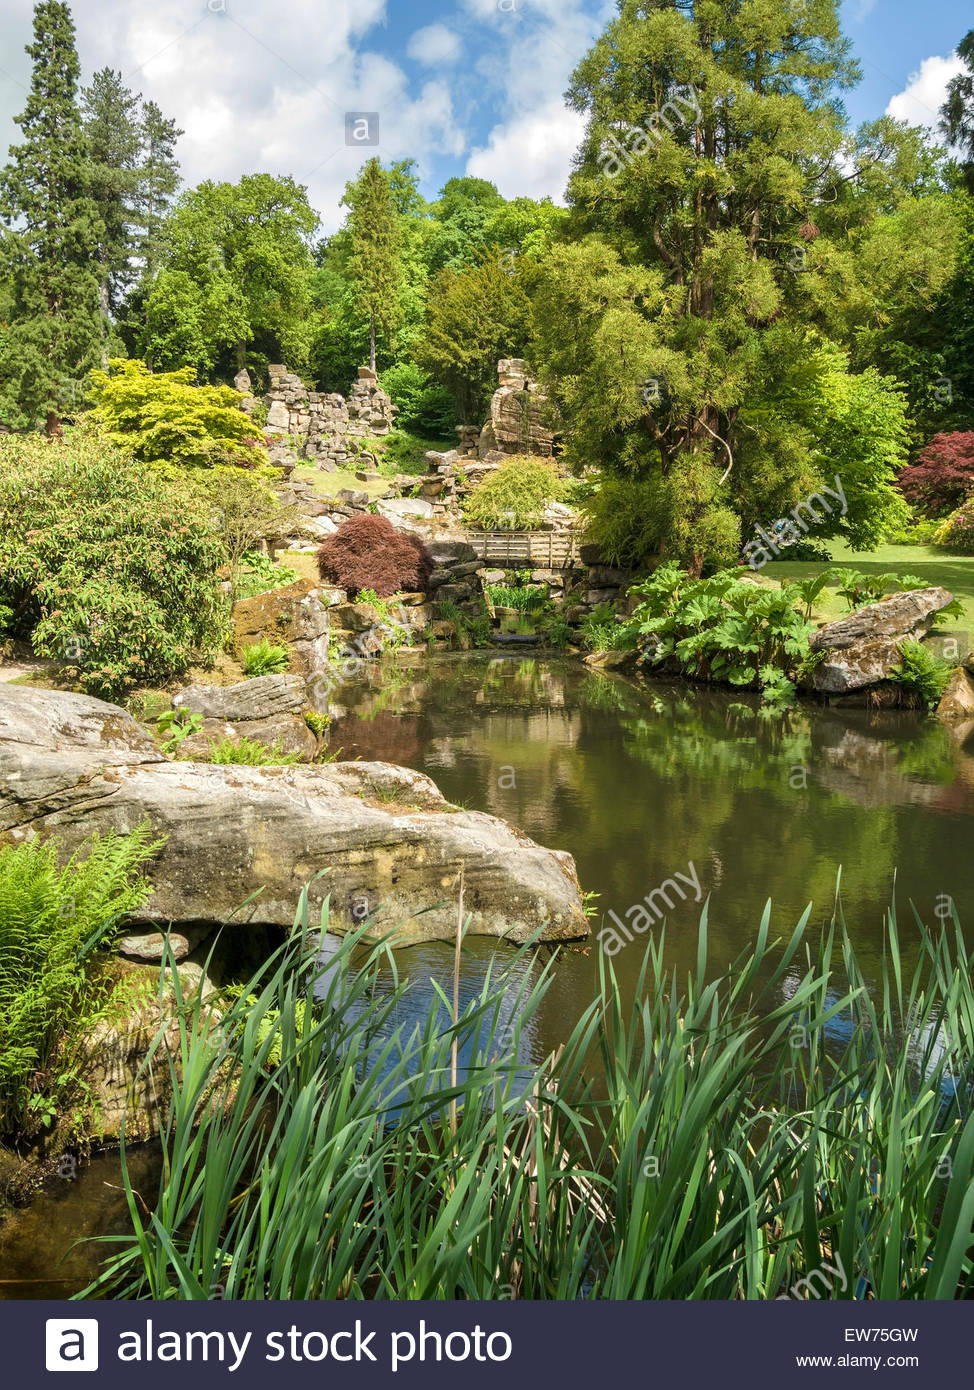 Paxton's Rock Garden, Chatsworth, Derbyshire, England, UK. - Stock Image